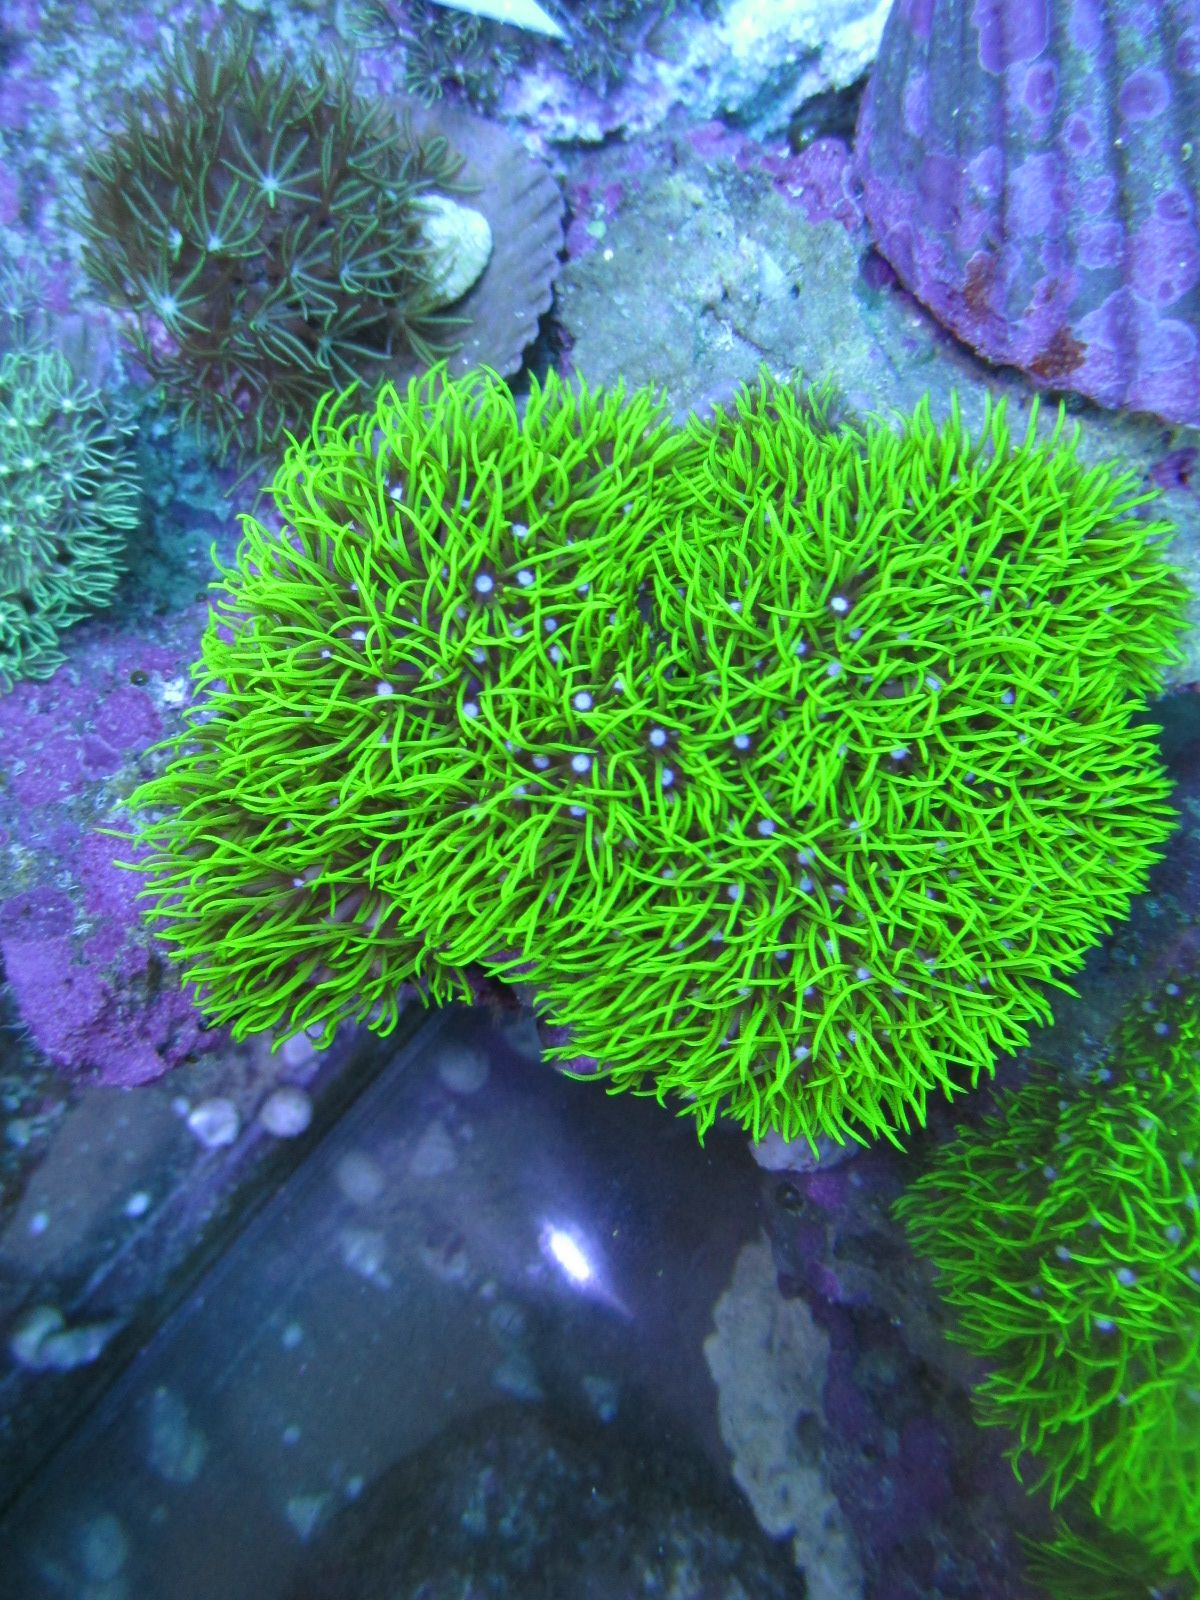 Pachyclavularia violacea  green star polyppachyclavularia violacea  green star polyp   Red Sea   Pinterest  . Green Star Polyp Lighting Requirements. Home Design Ideas